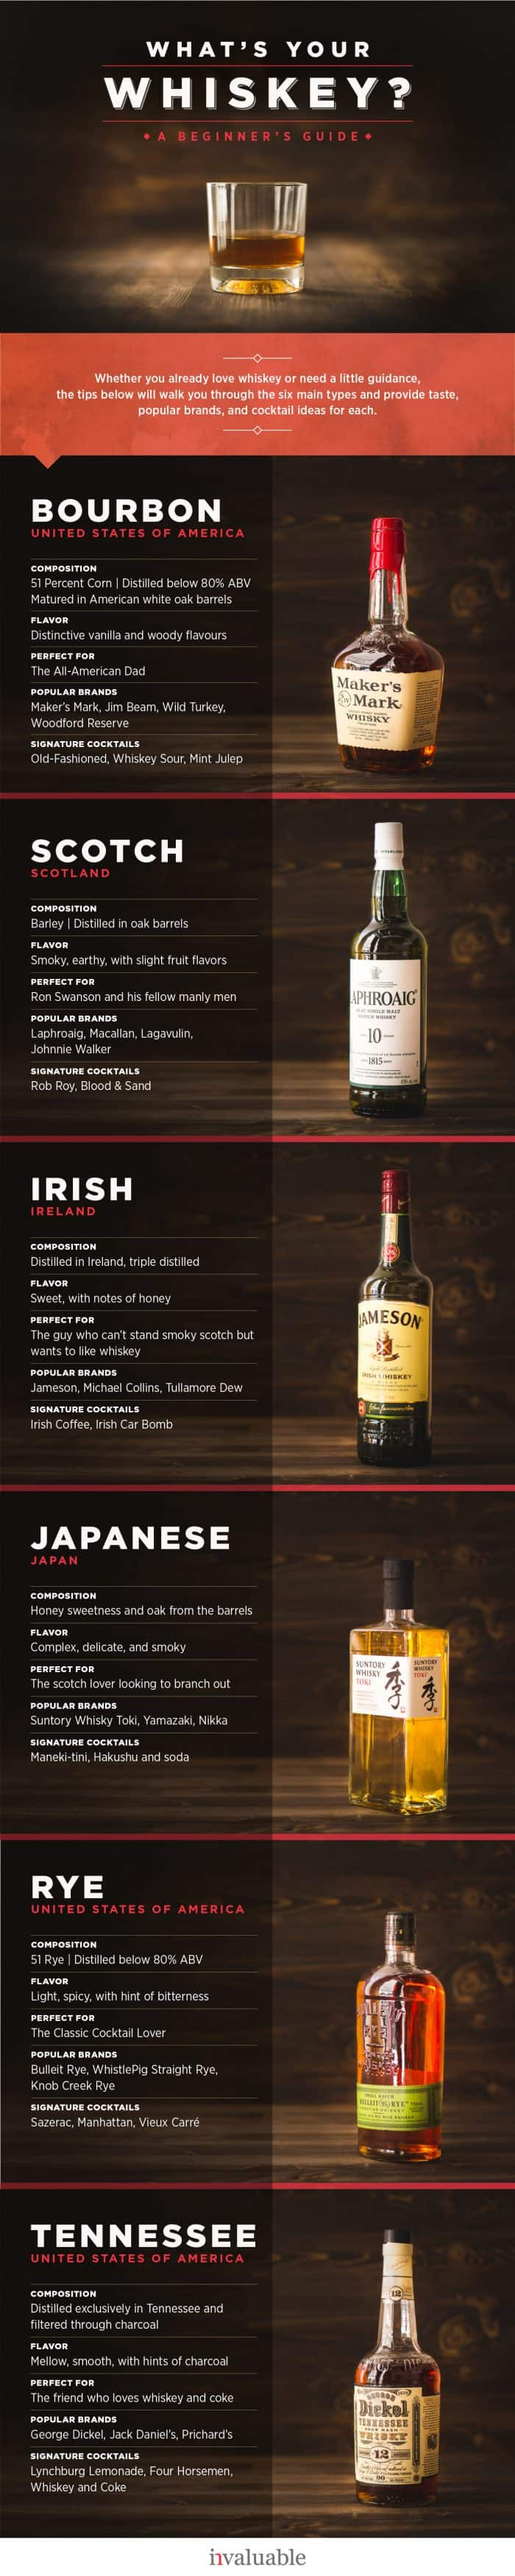 Infographic about different types of whiskey and some information about them.